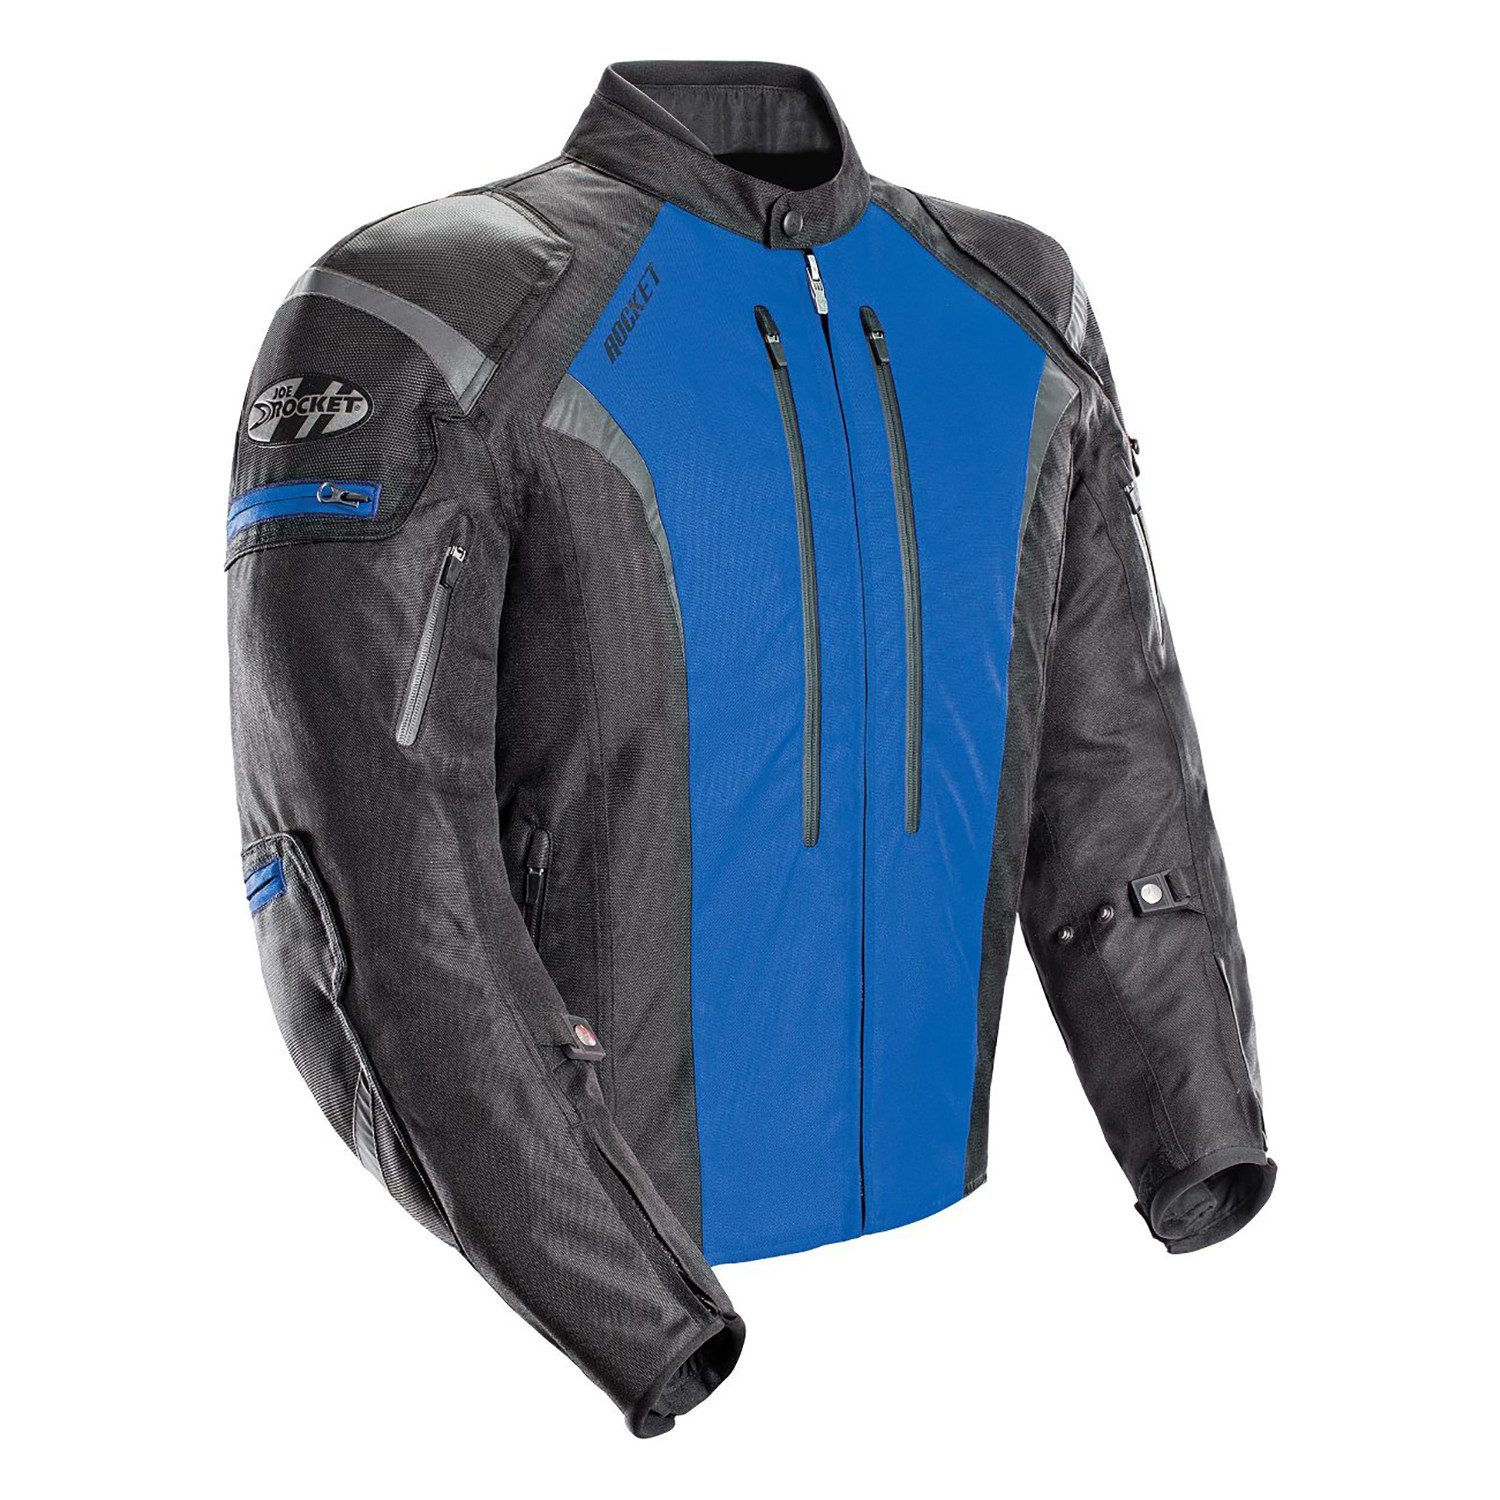 Campera Joe Rocket Atomic 5.0 Negro Azul